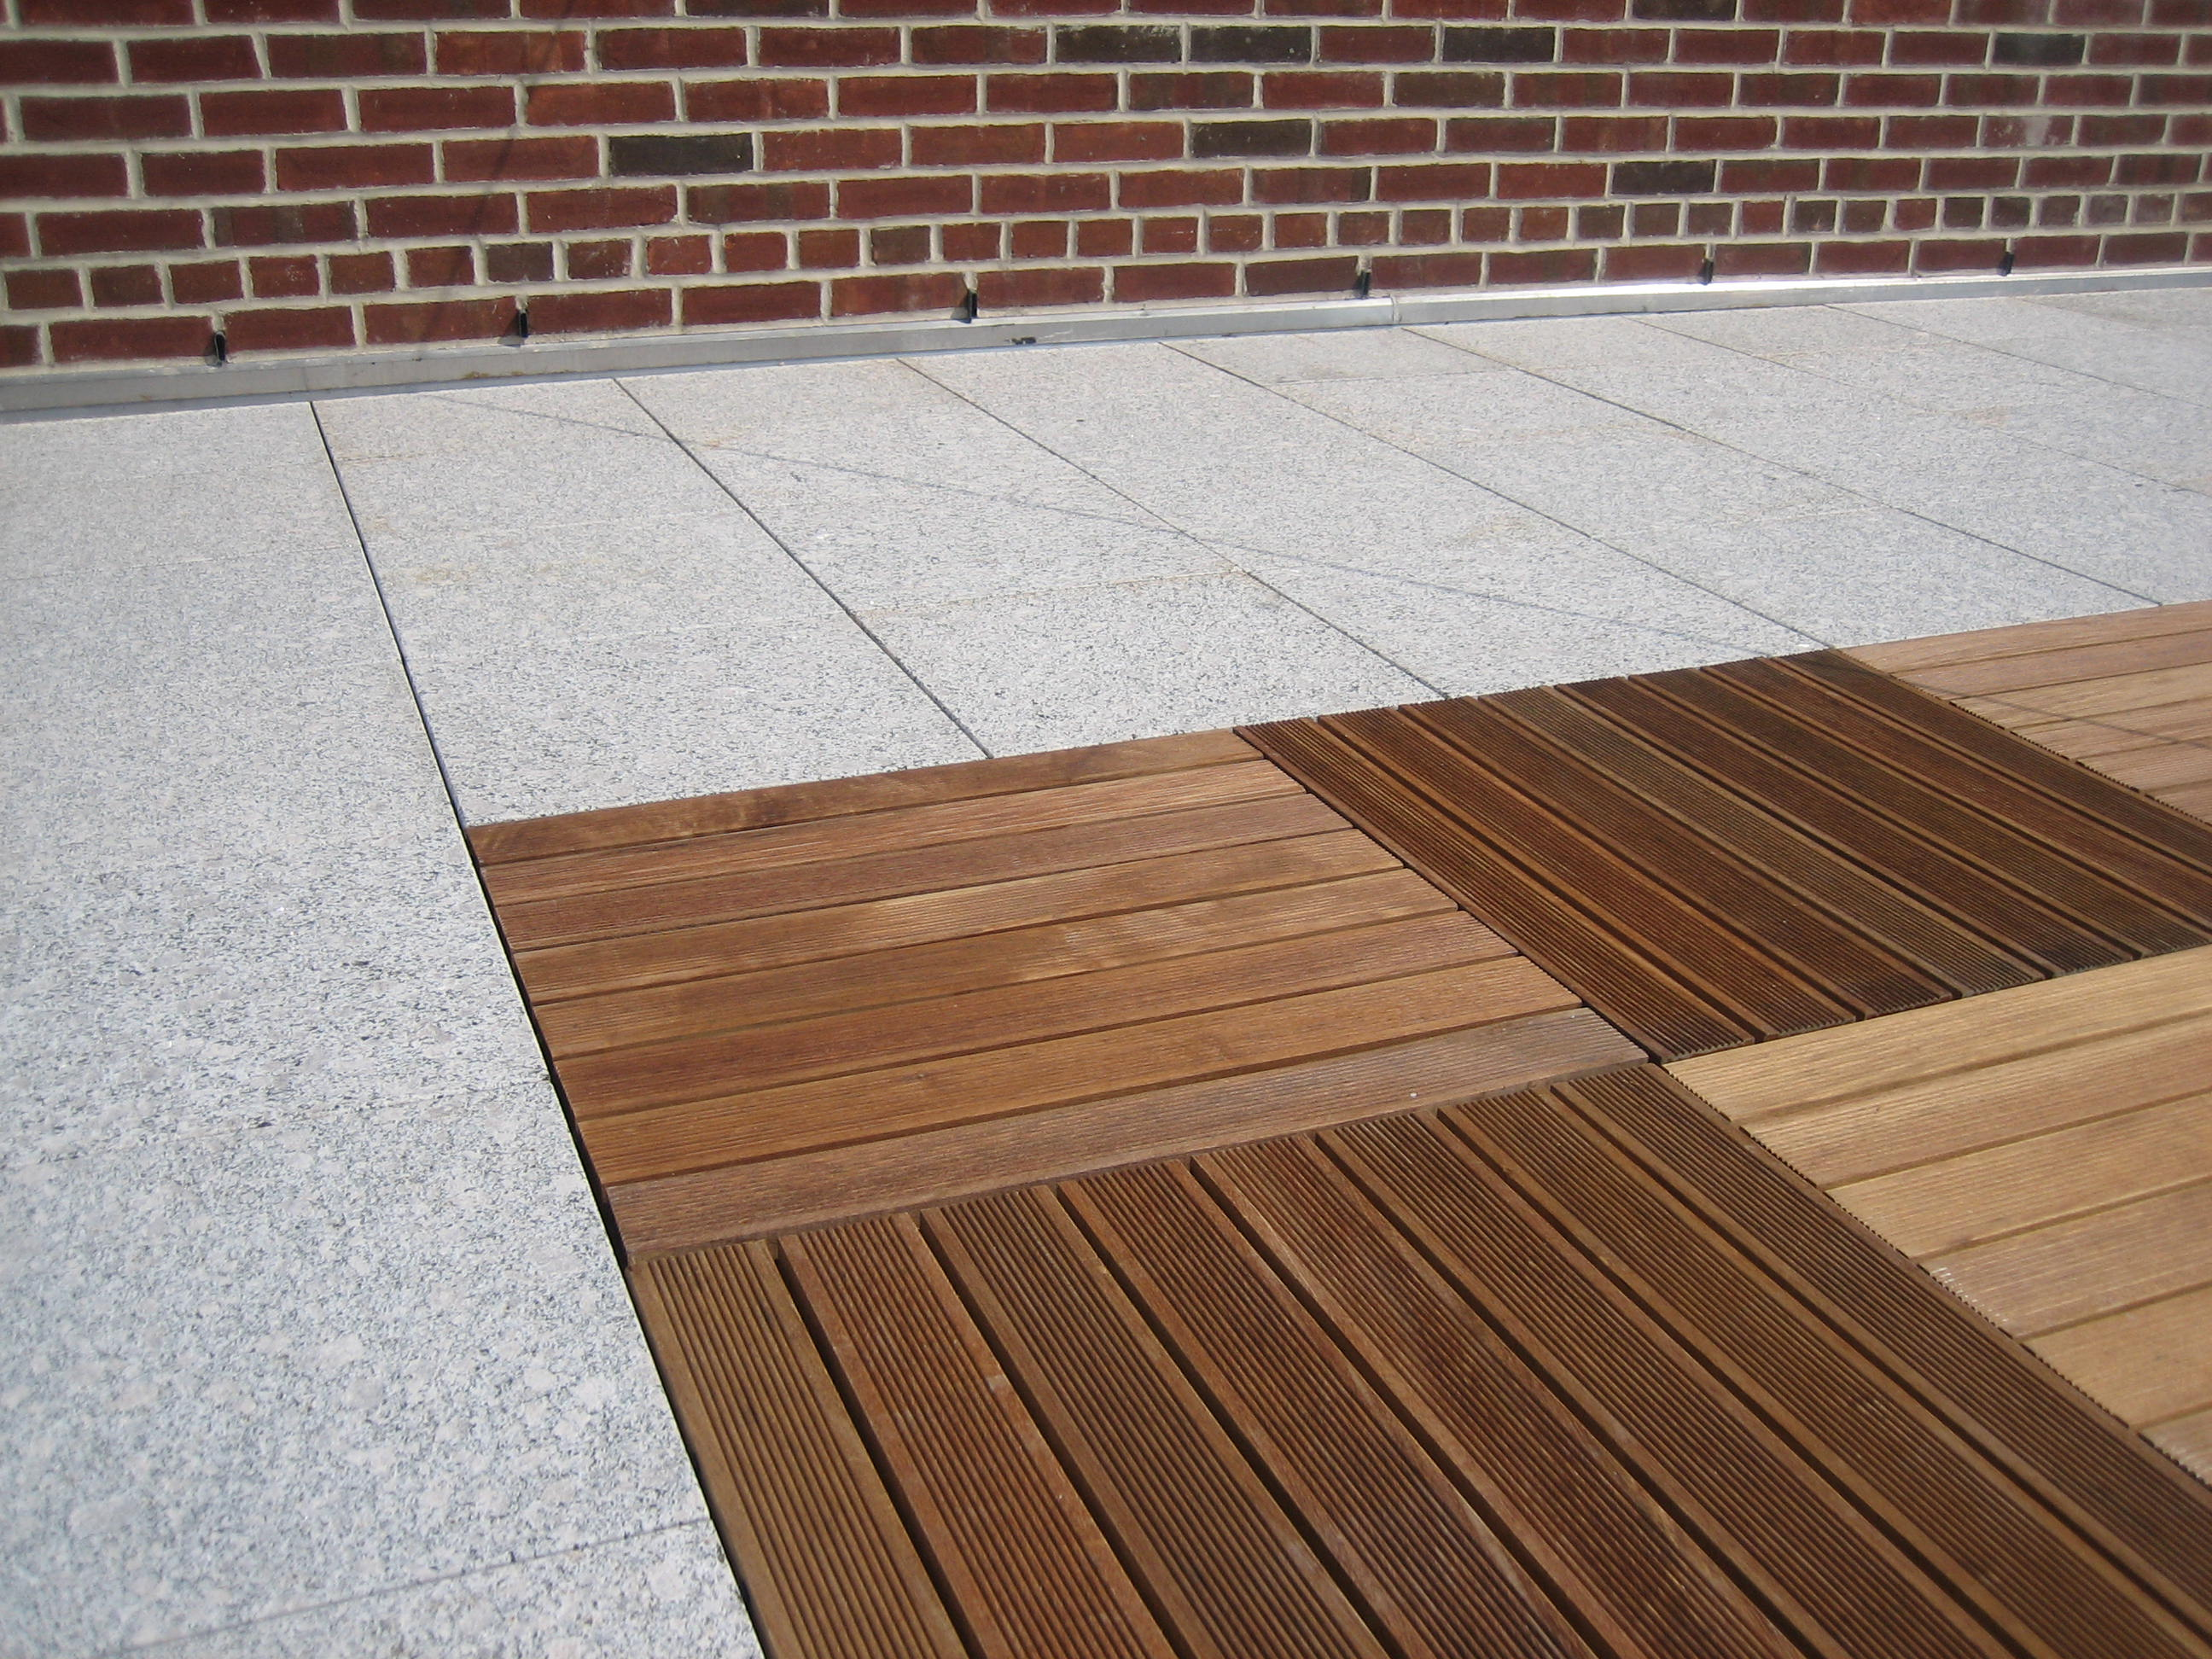 Lightweight Pavers For Patio Lightweight Pavers For Patio